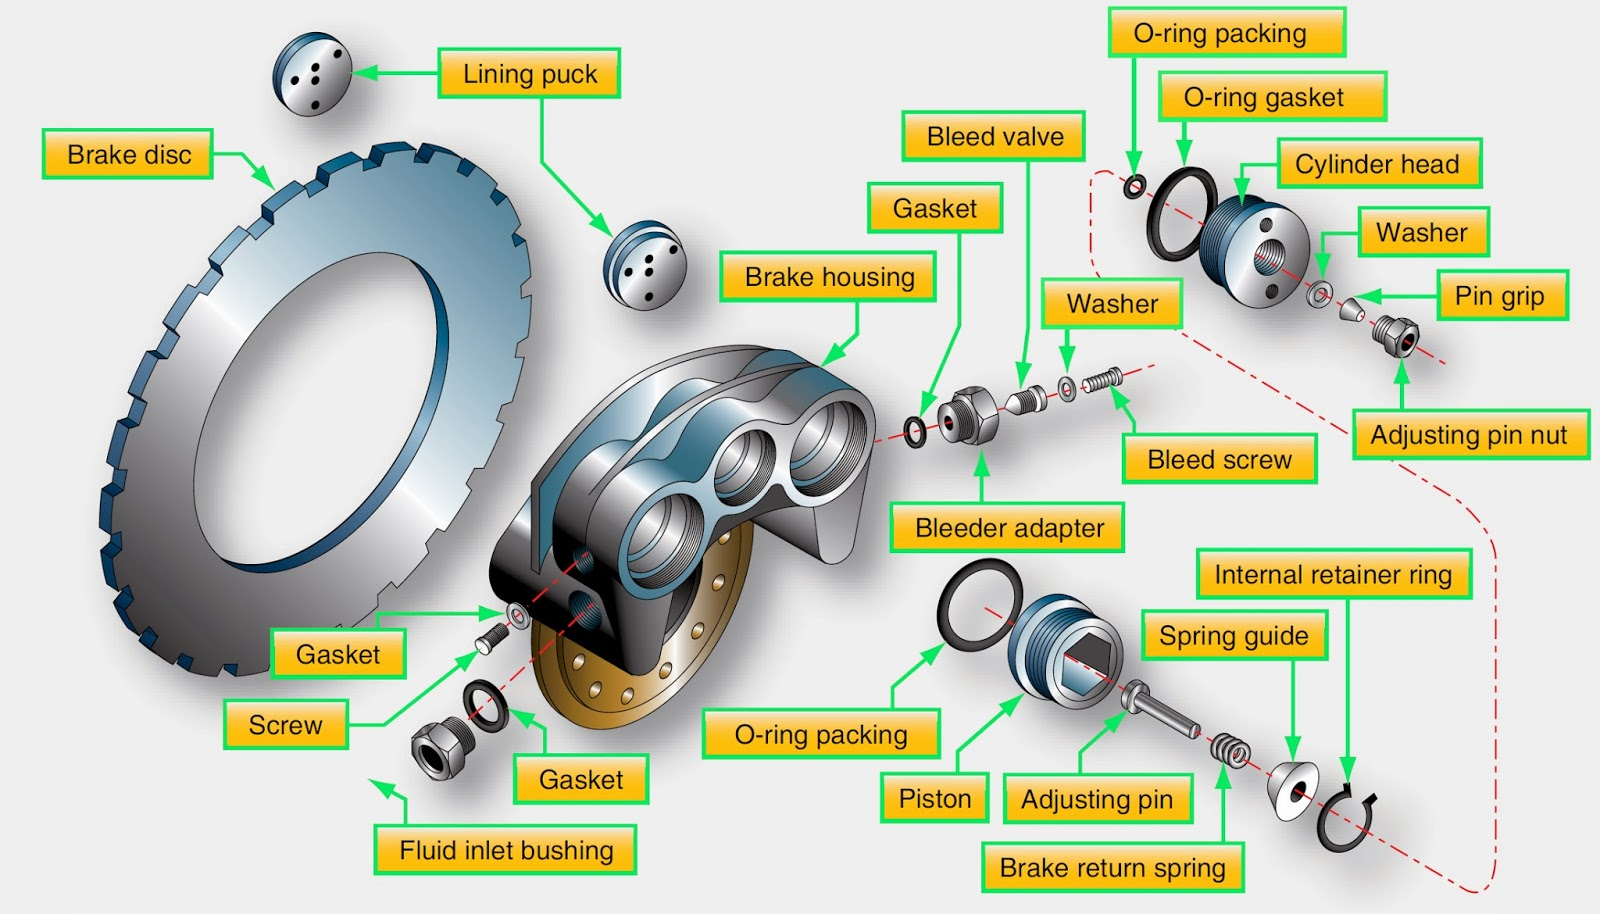 Car Exploded Parts Diagram together with Toyota 1MZFE Timing Belt Replacement Camry Avalon ES300 together with Isuzu 1 8l Engine Diagram moreover 87 Toyota 22rte Turbo Engine Diagram moreover Car Exploded Parts Diagram. on toyota 1mzfe engine diagram